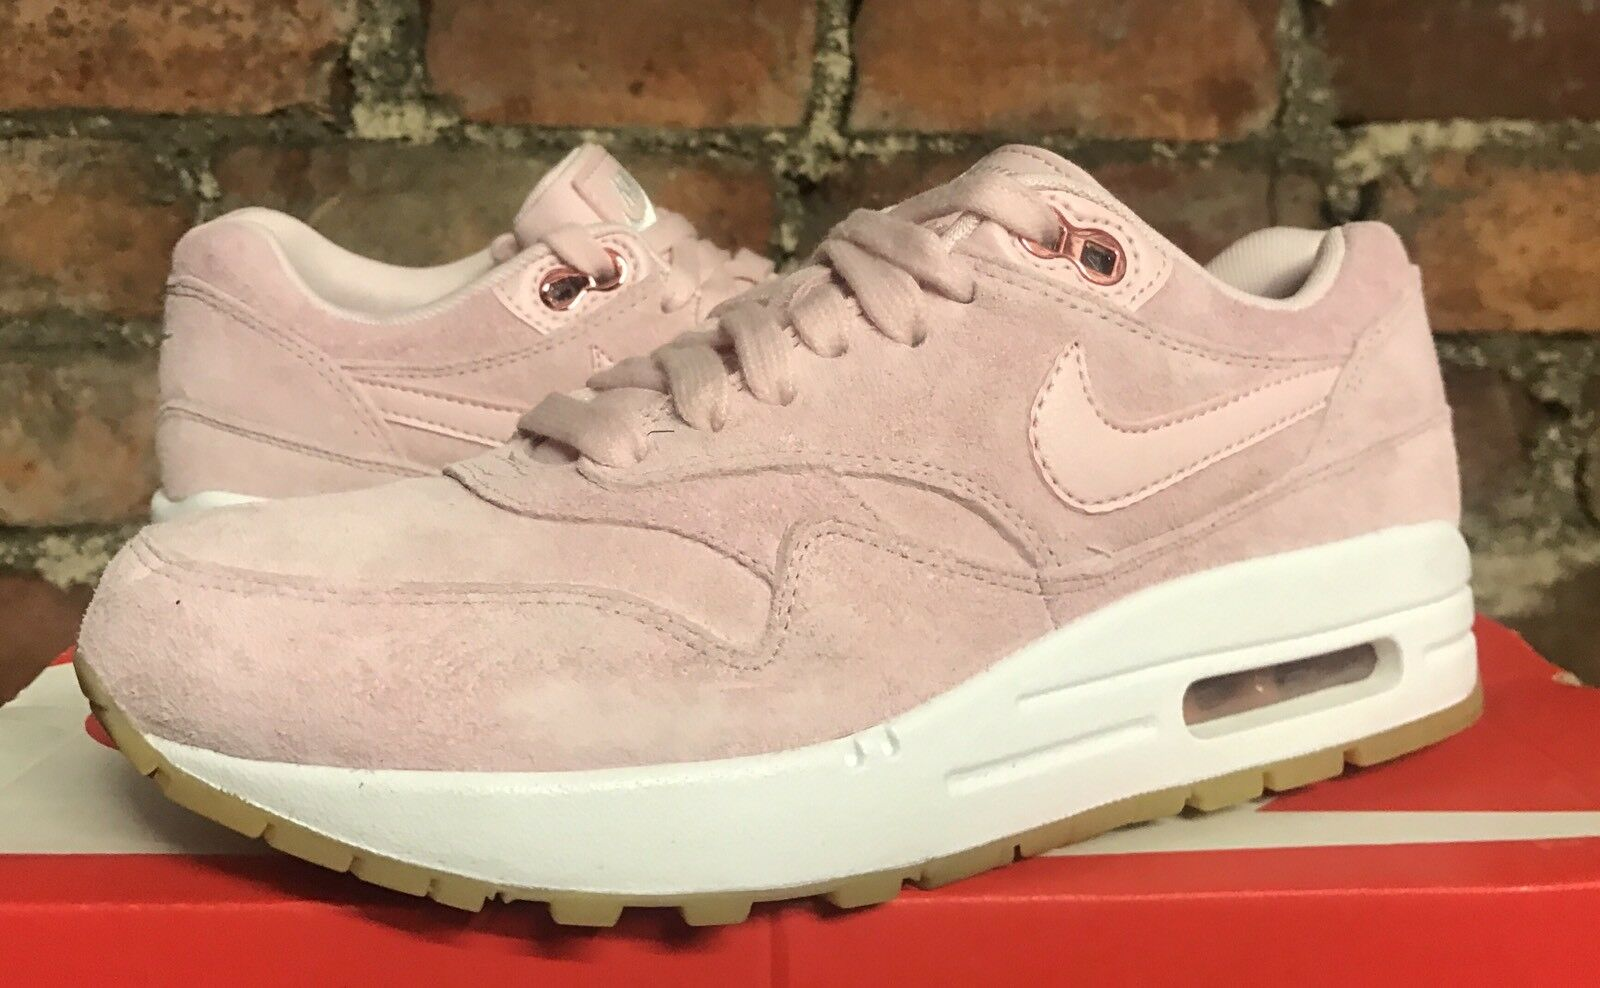 Femme NIKE AIR MAX 1 SD PRISM Rose blanc UK8 TRAINERS EU42.5 US10.5 919484 600 TRAINERS UK8 c4148a